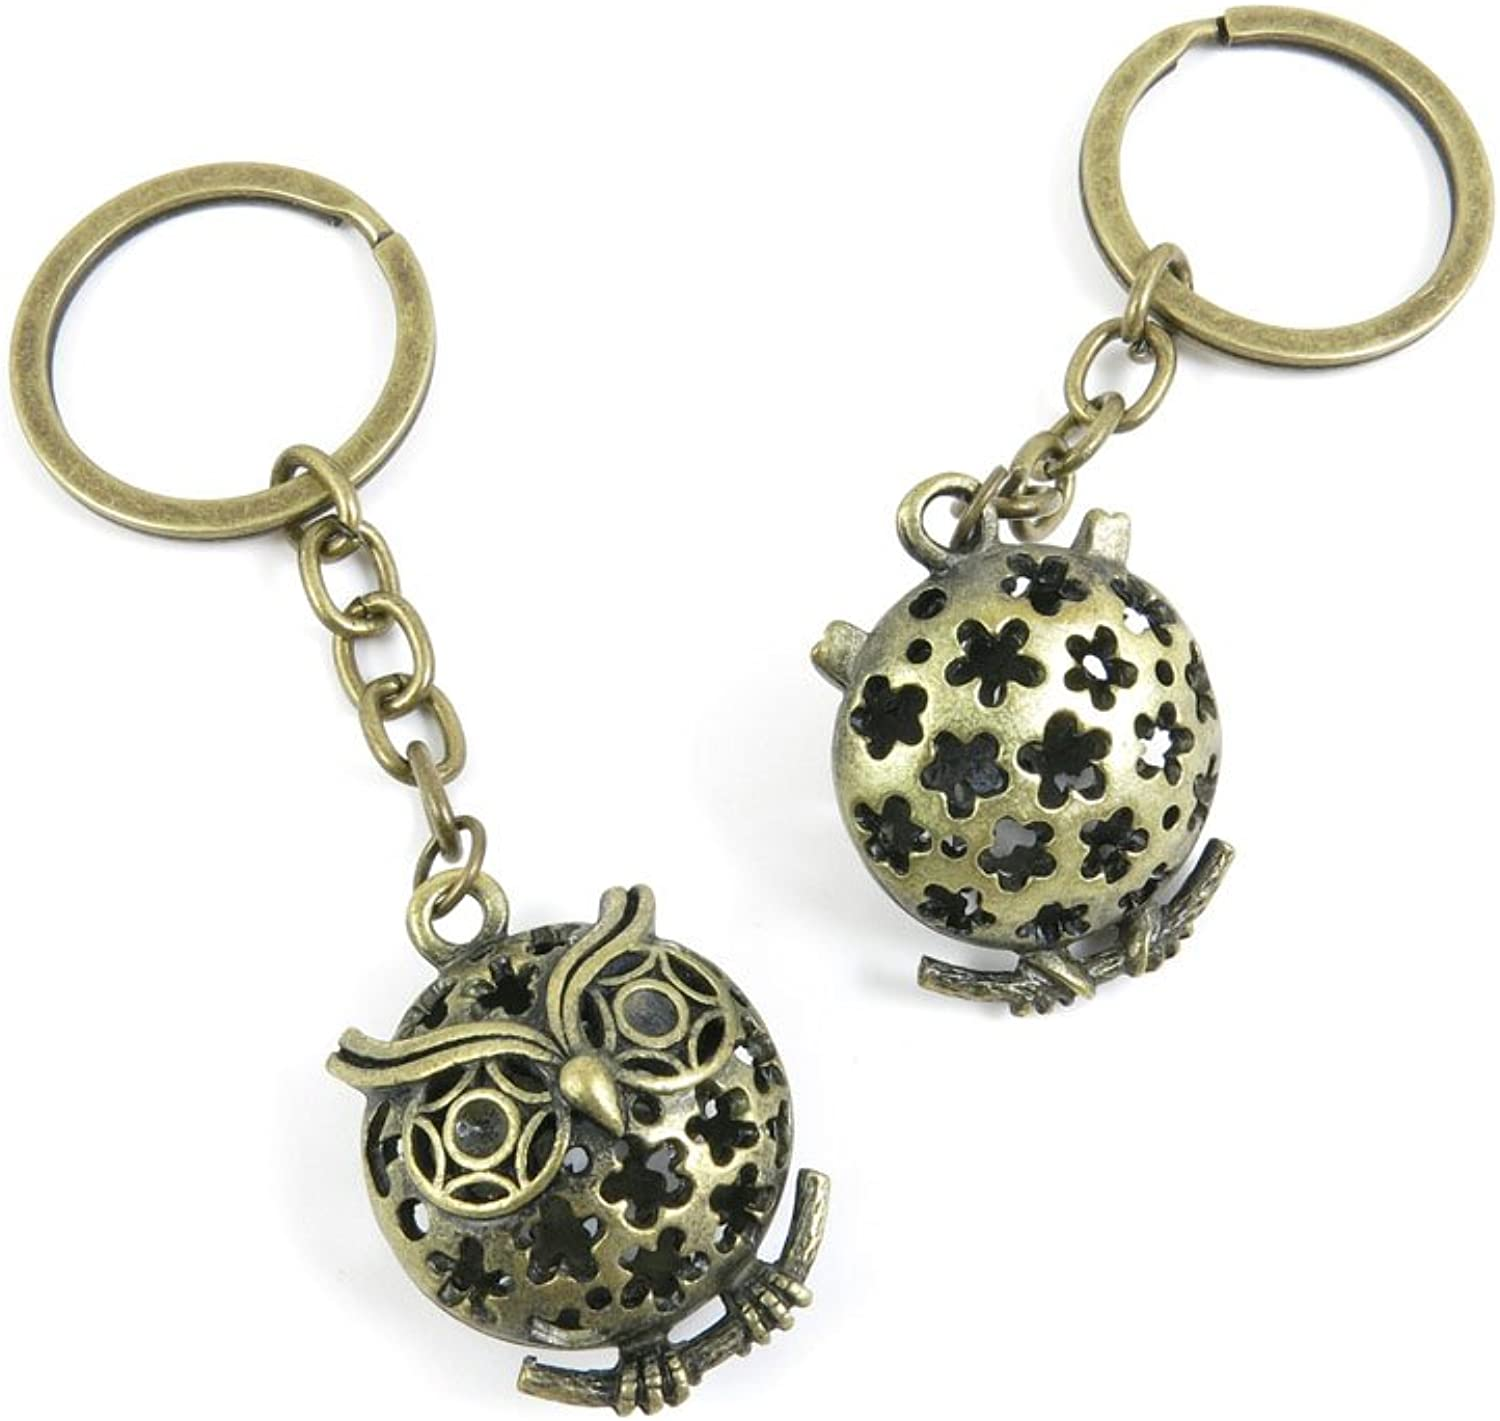 40 PCS Keyring Car Door Key Ring Tag Chain Keychain Wholesale Suppliers Charms Handmade D4UR2 Hollow Owl